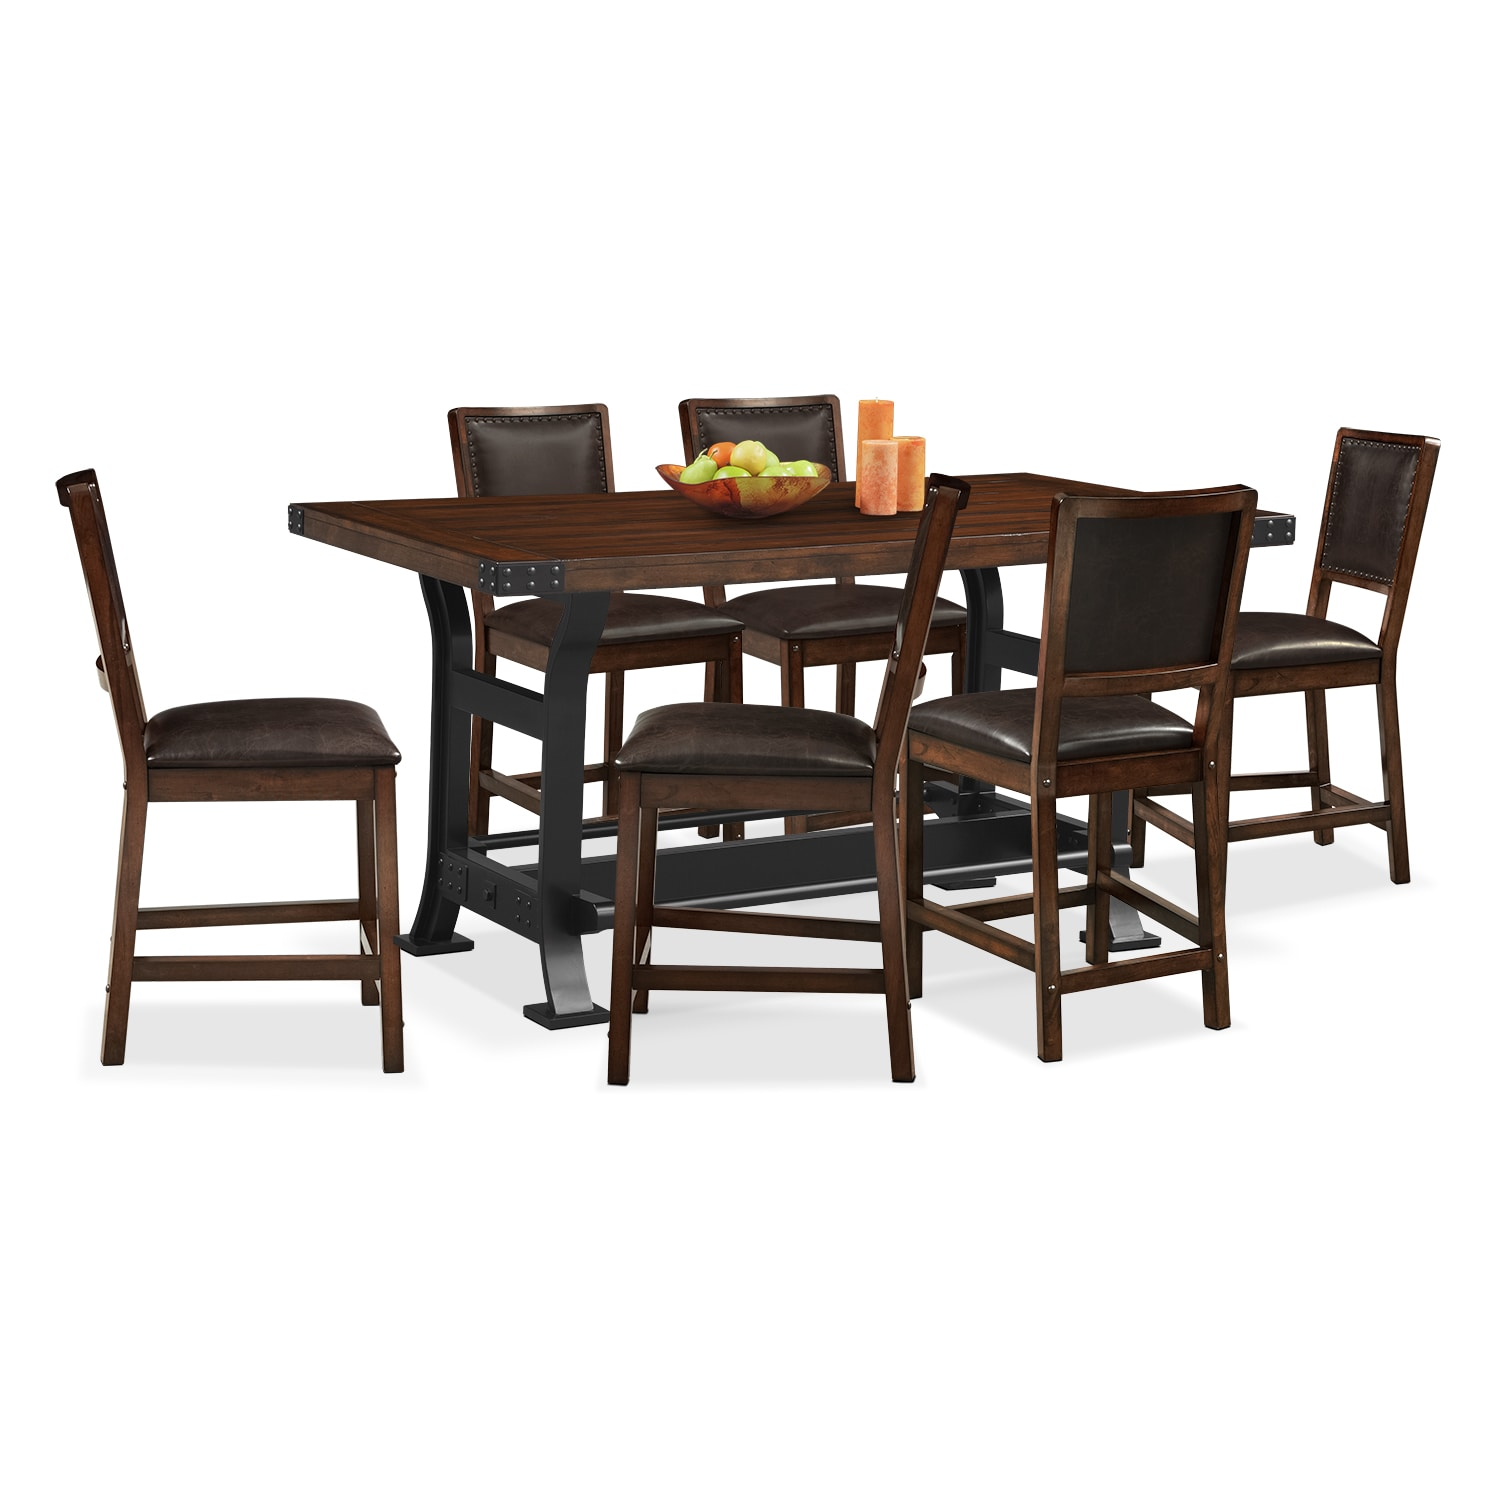 Dining Room Furniture - Newcastle Counter-Height Table and 6 Chairs - Mahogany